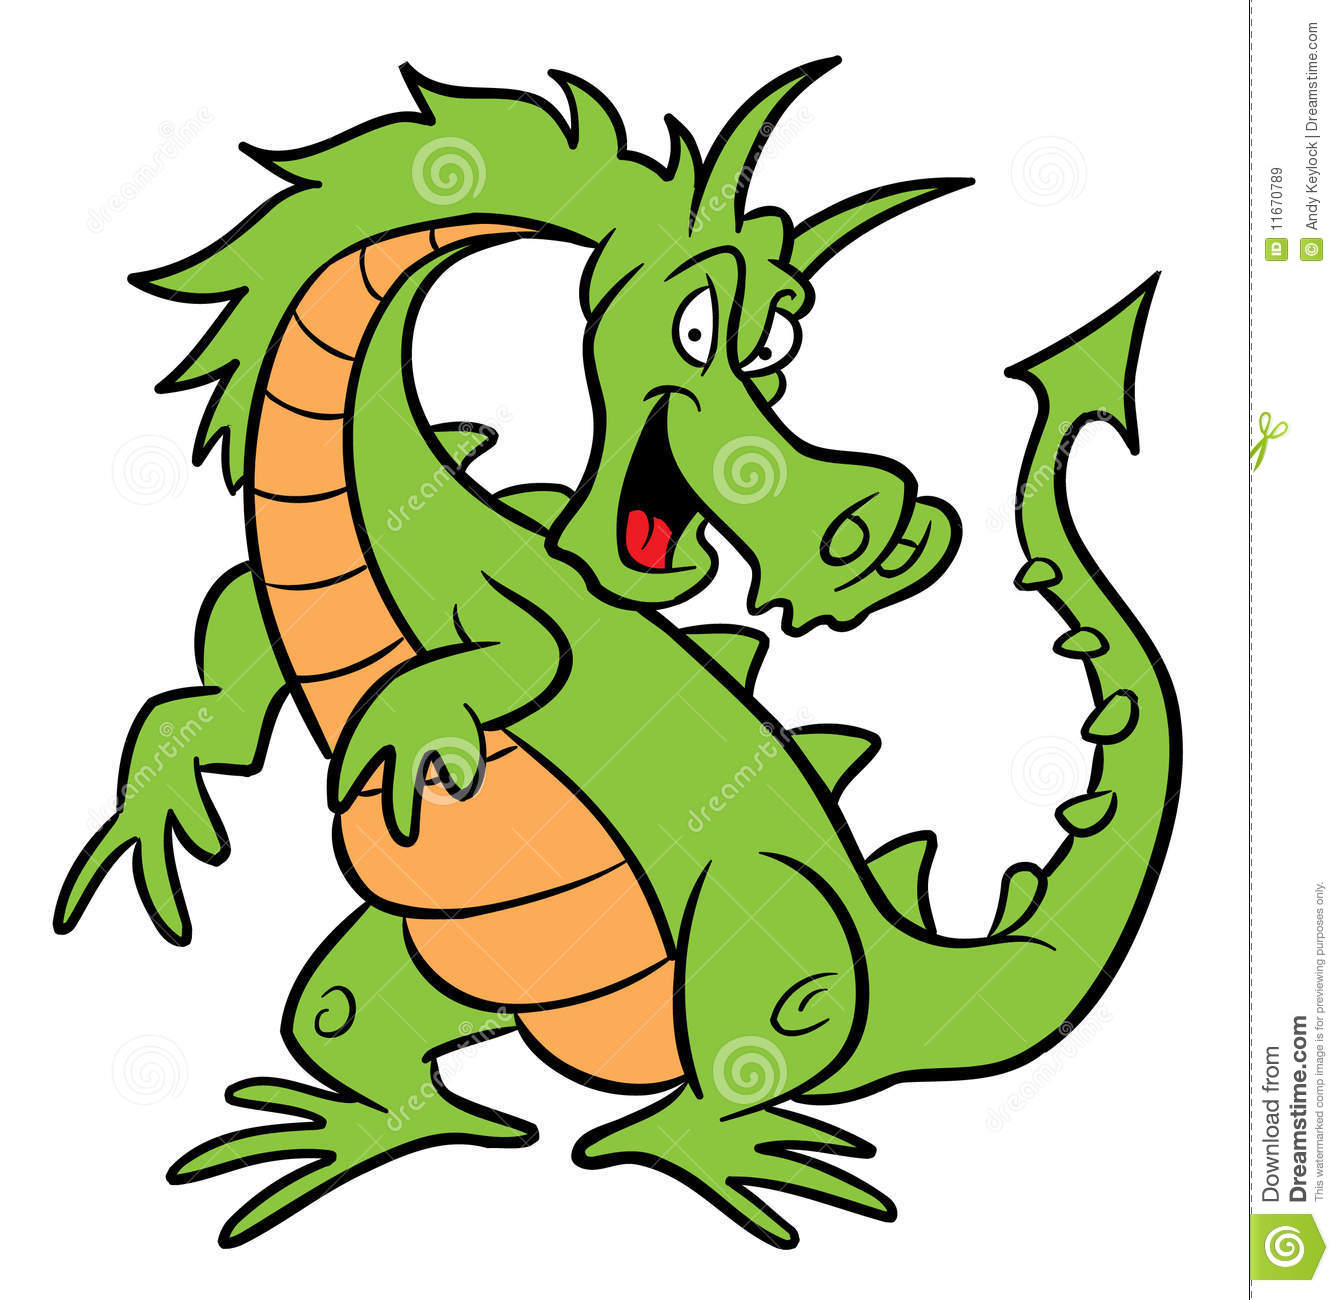 Green Dragon Cartoon Illustration Royalty Free Stock Images   Image